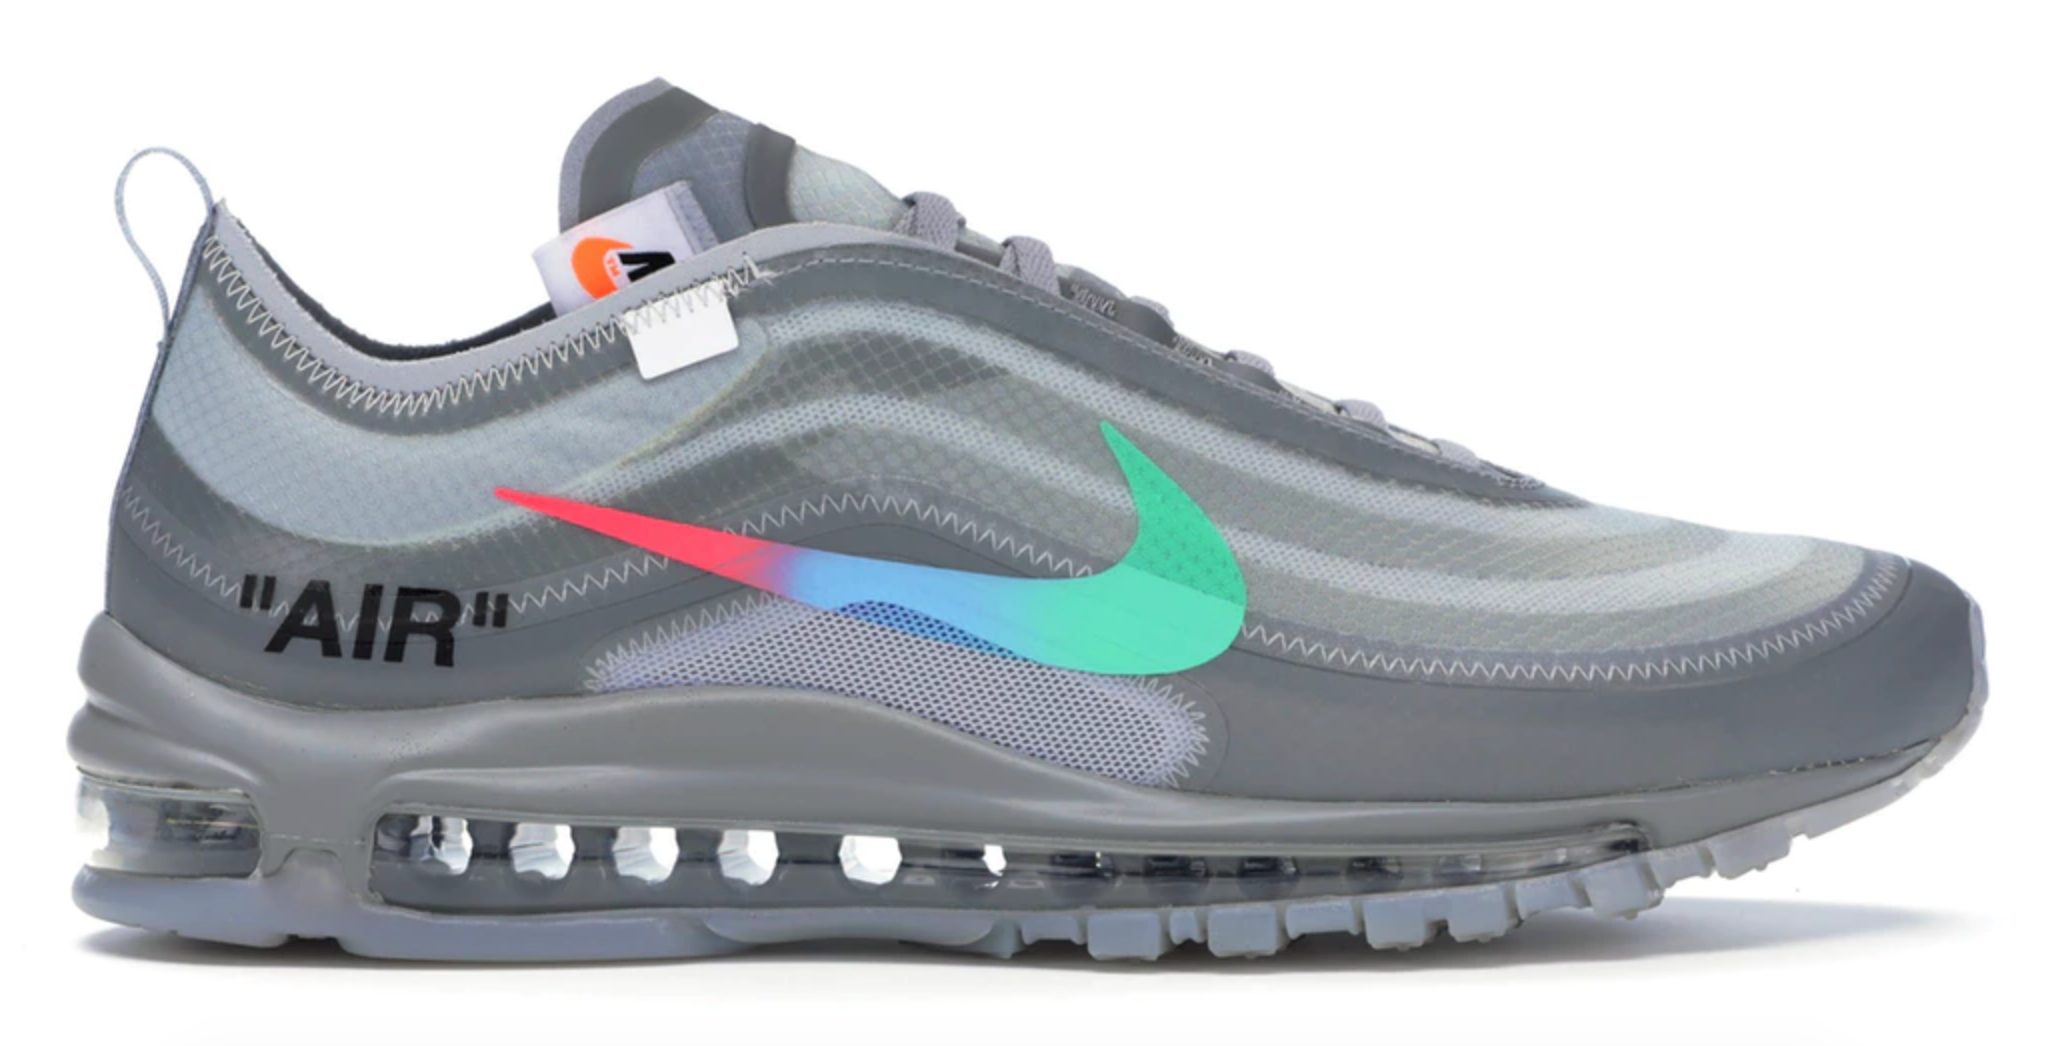 Buy Nike Air Max 97 Off-White Menta for sale – authentechs.com 3abc38198